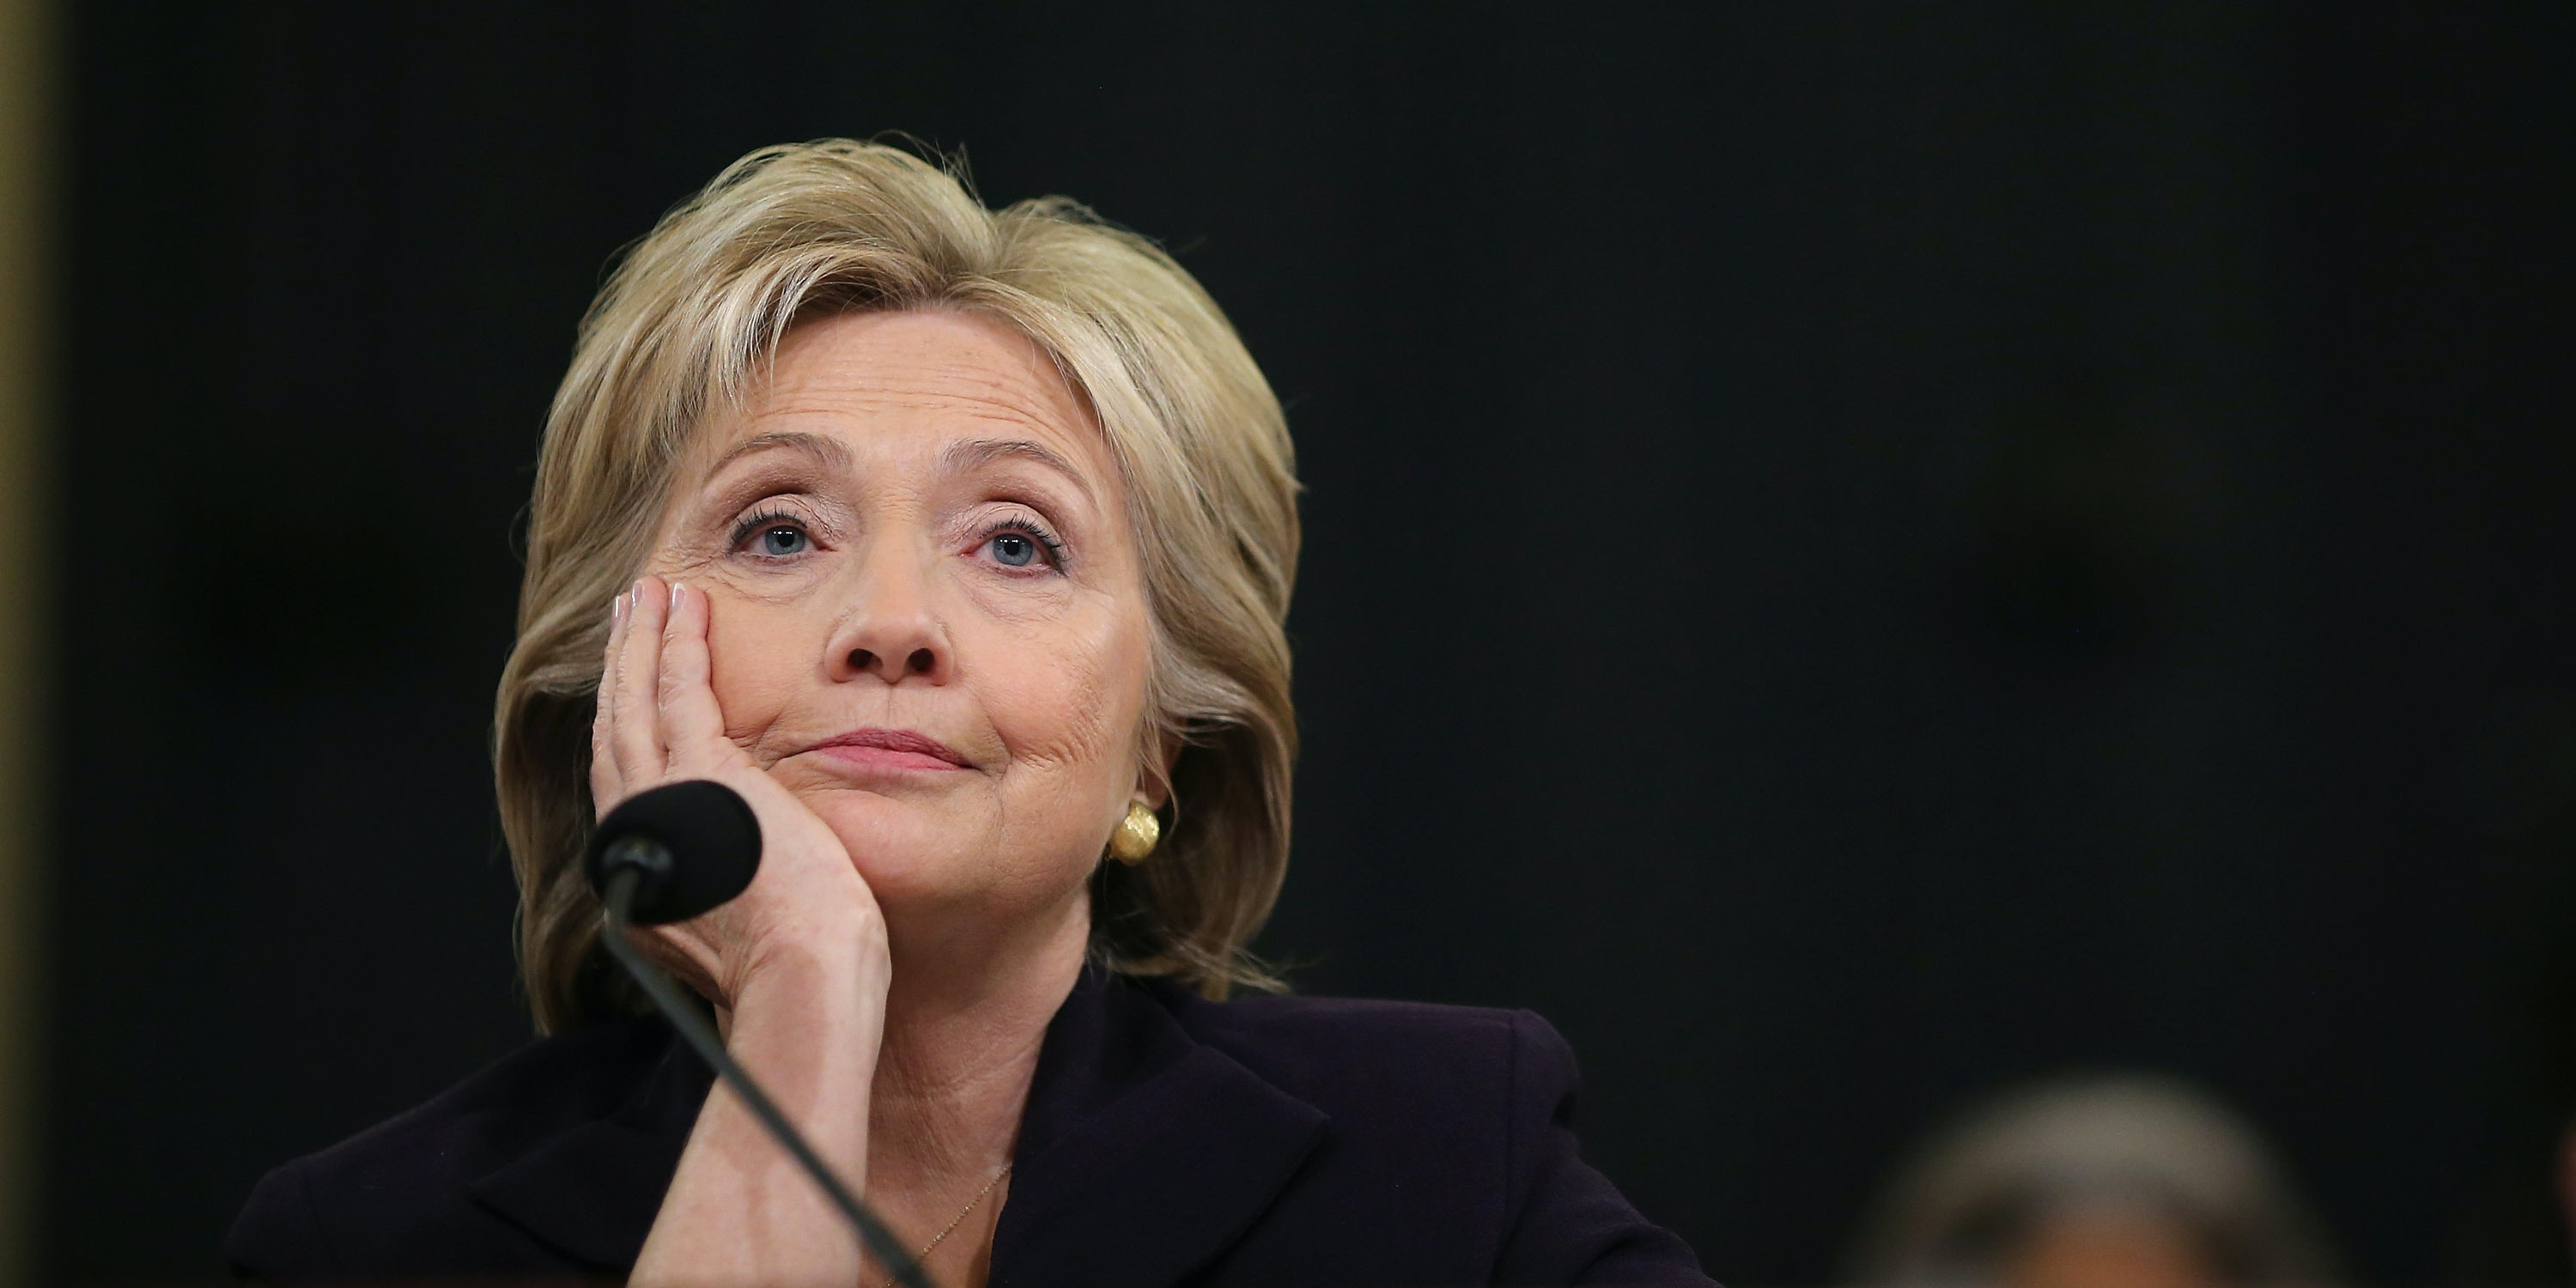 WASHINGTON, DC - OCTOBER 22:  Democratic presidential candidate and former Secretary of State Hillary Clinton testifies before the House Select Committee on Benghazi October 22, 2015 on Capitol Hill in Washington, DC. The committee held a hearing to continue its investigation on the attack that killed Ambassador Chris Stevens and three other Americans at the diplomatic compound in Benghazi, Libya, on the evening of September 11, 2012.  (Photo by Chip Somodevilla/Getty Images)